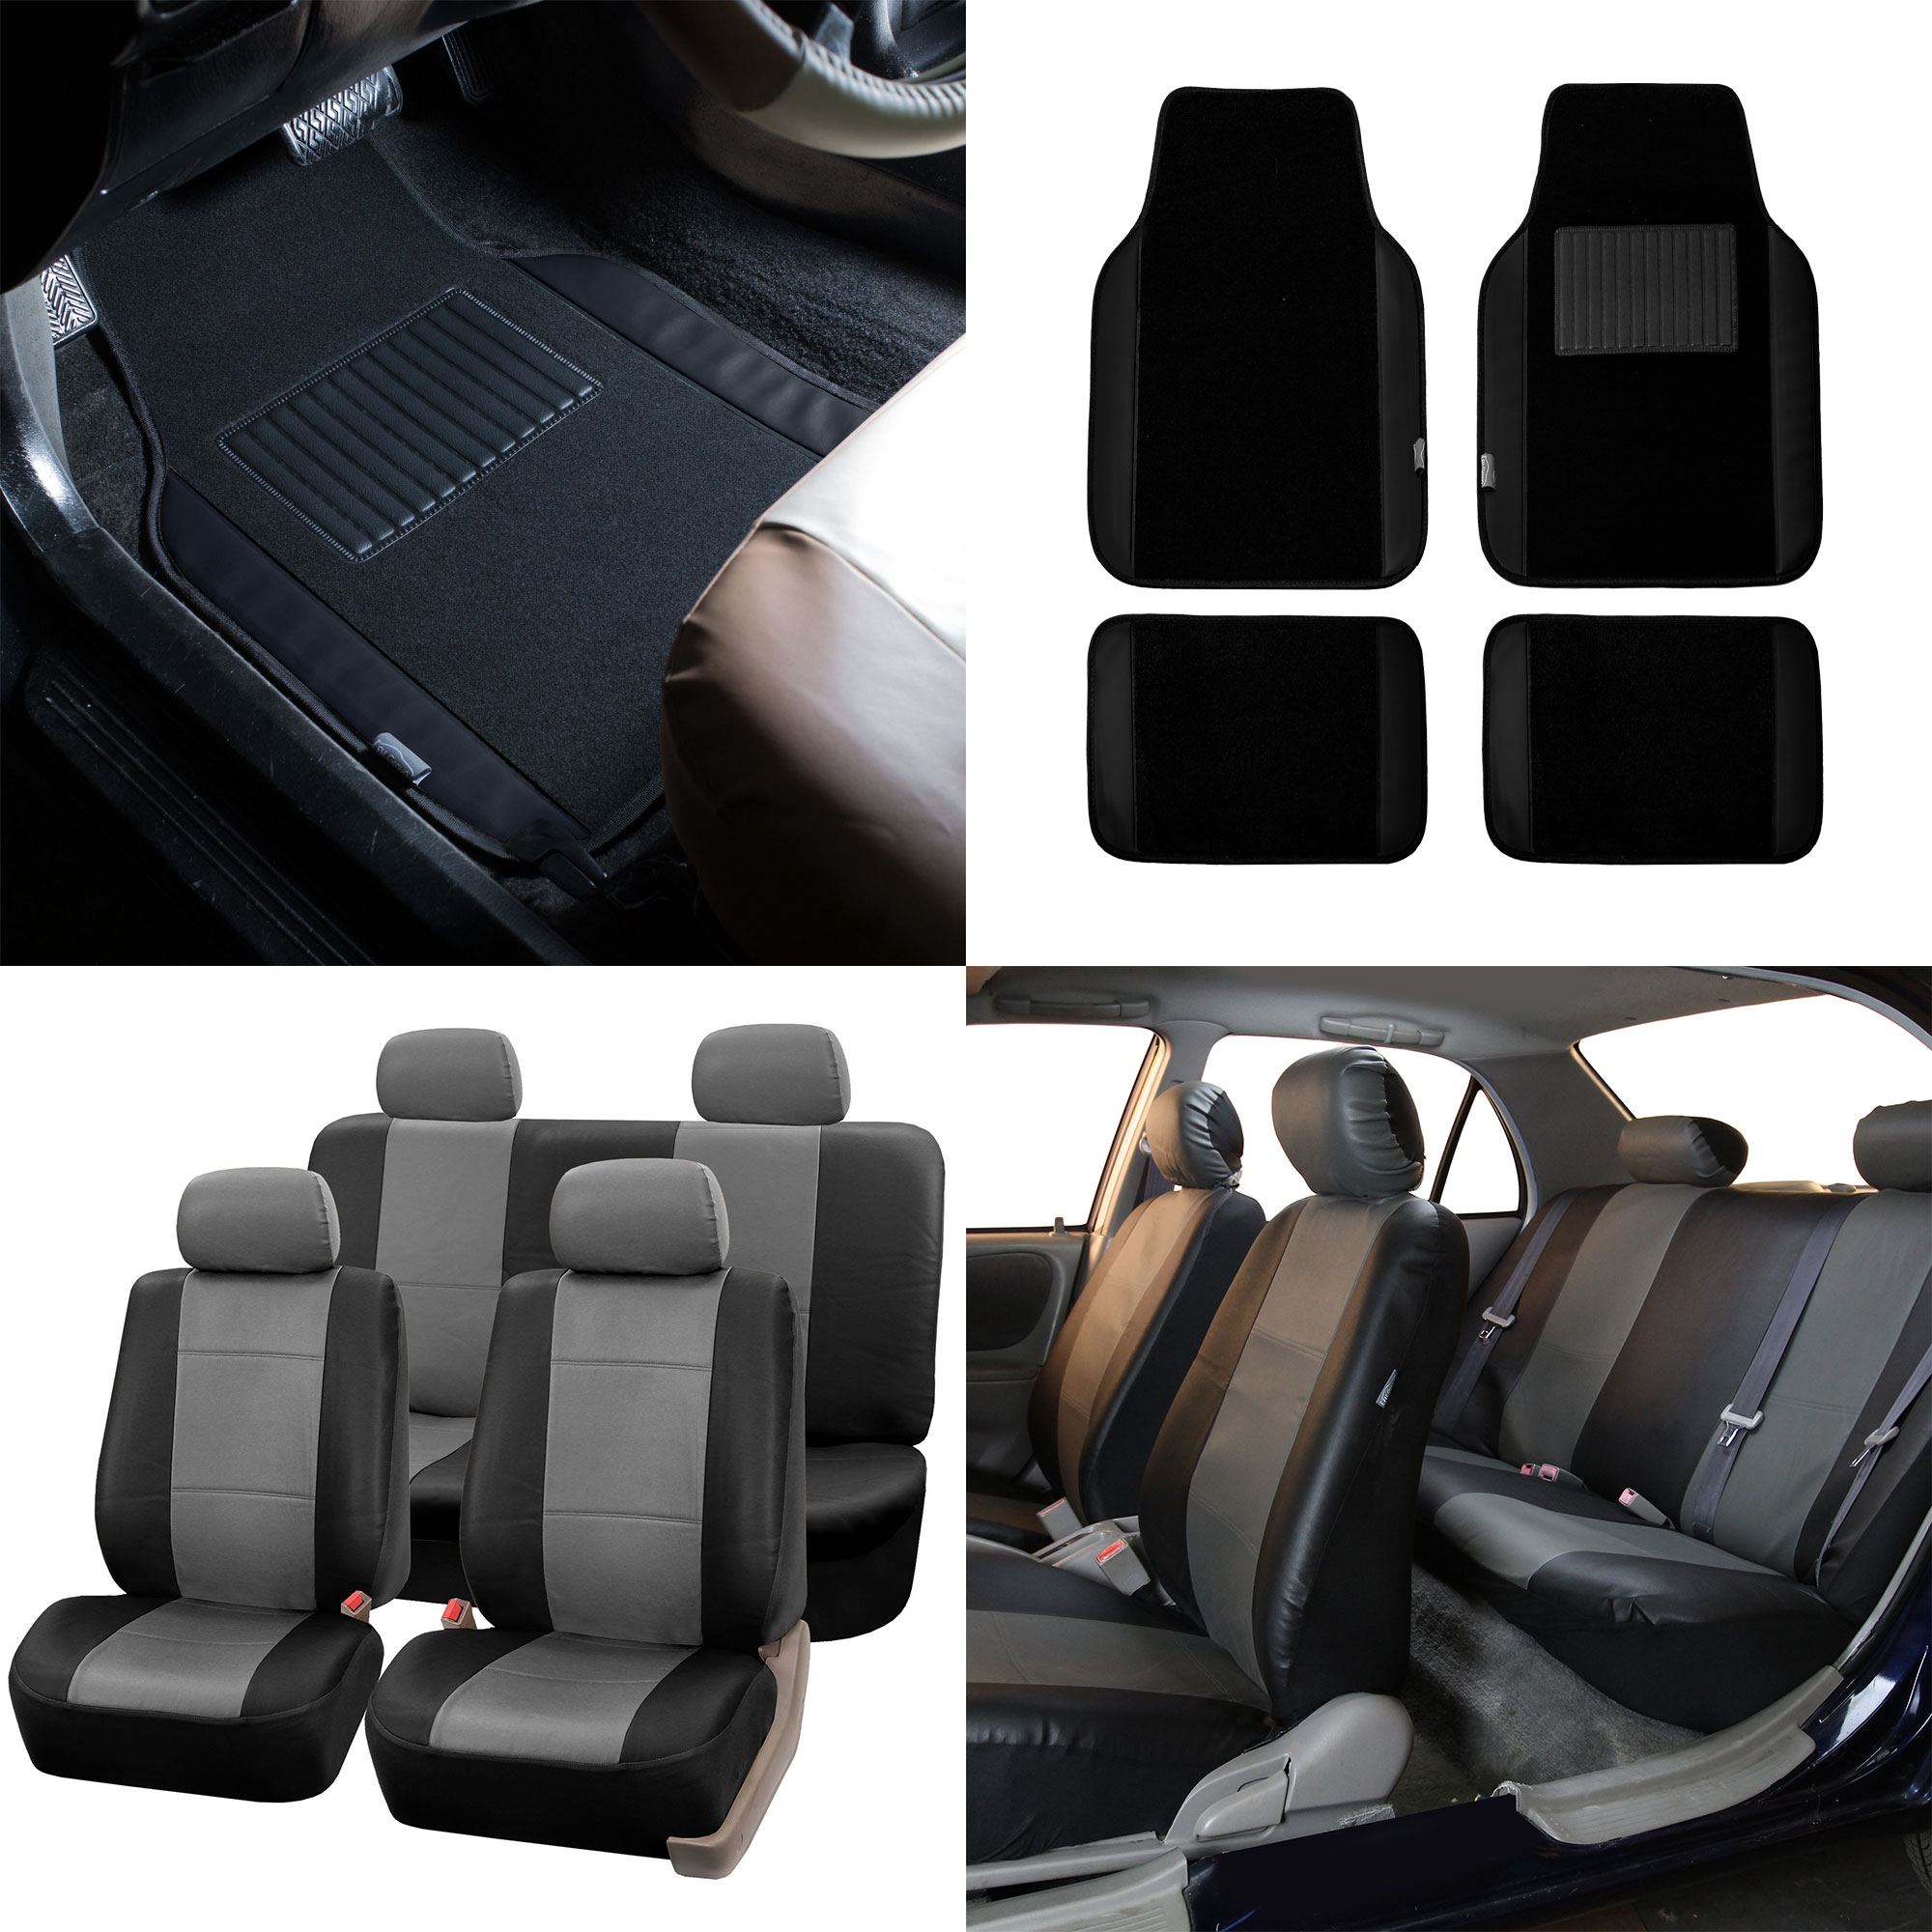 Fh Group Universal Pu Leather Car Seat Covers Full Set